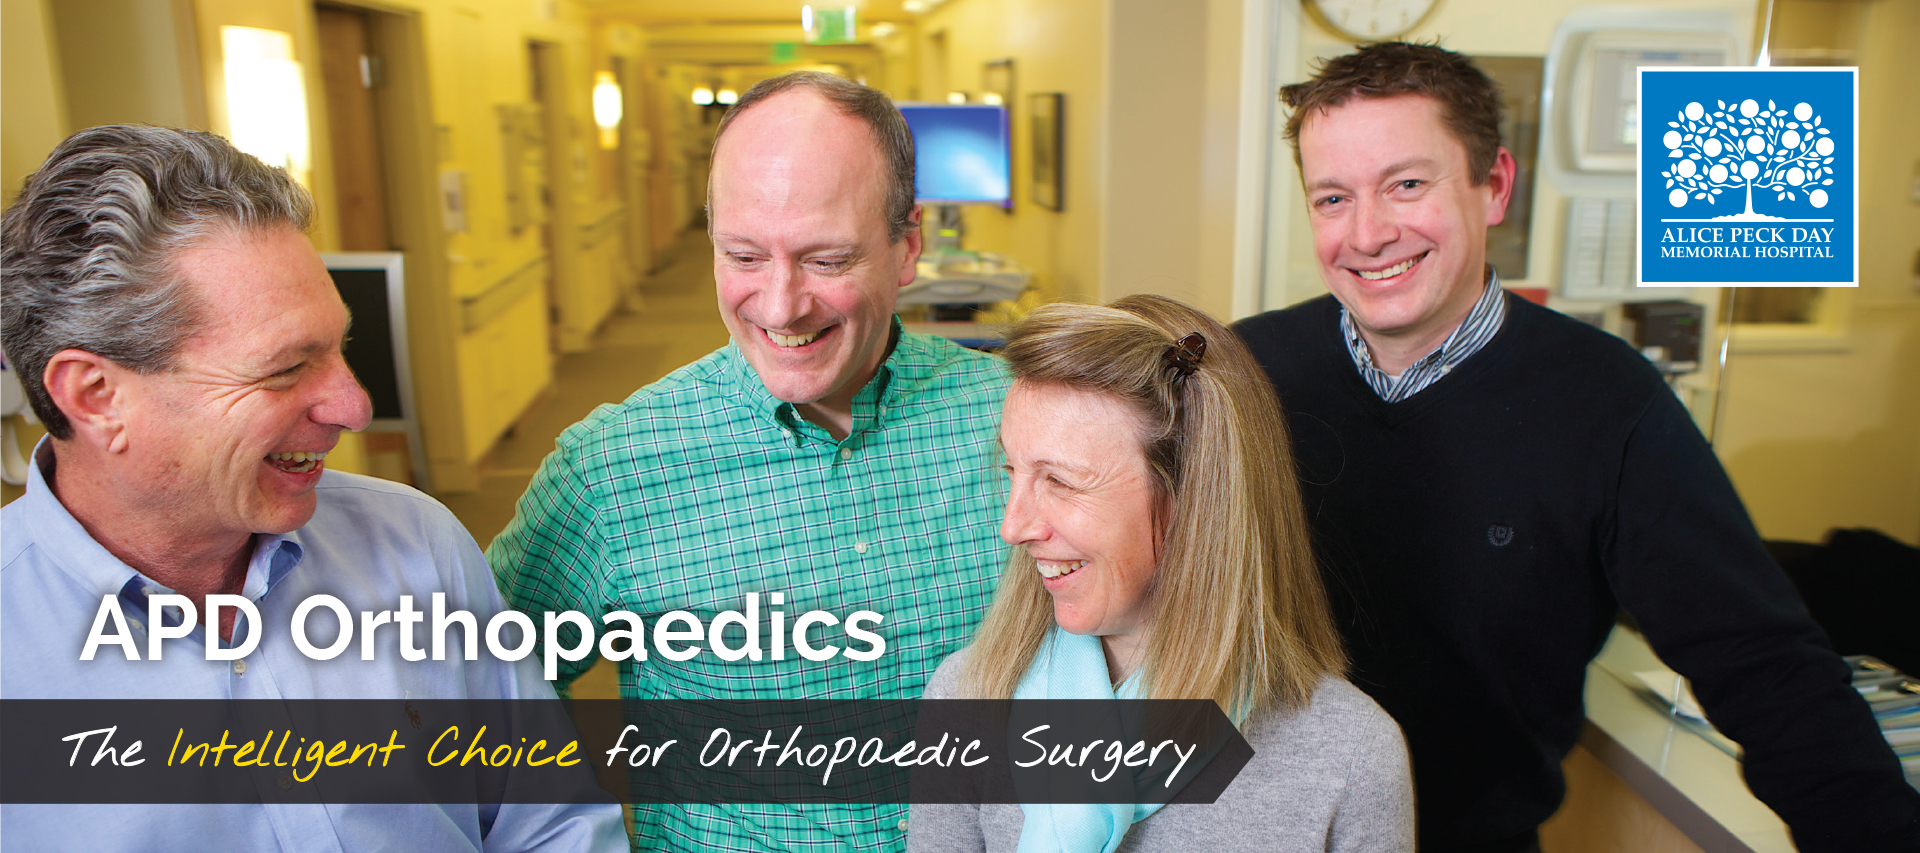 "Cover for orthopaedics brochure for APD showing the team and the words ""The intelligent choice for orthopaedic surgery"""